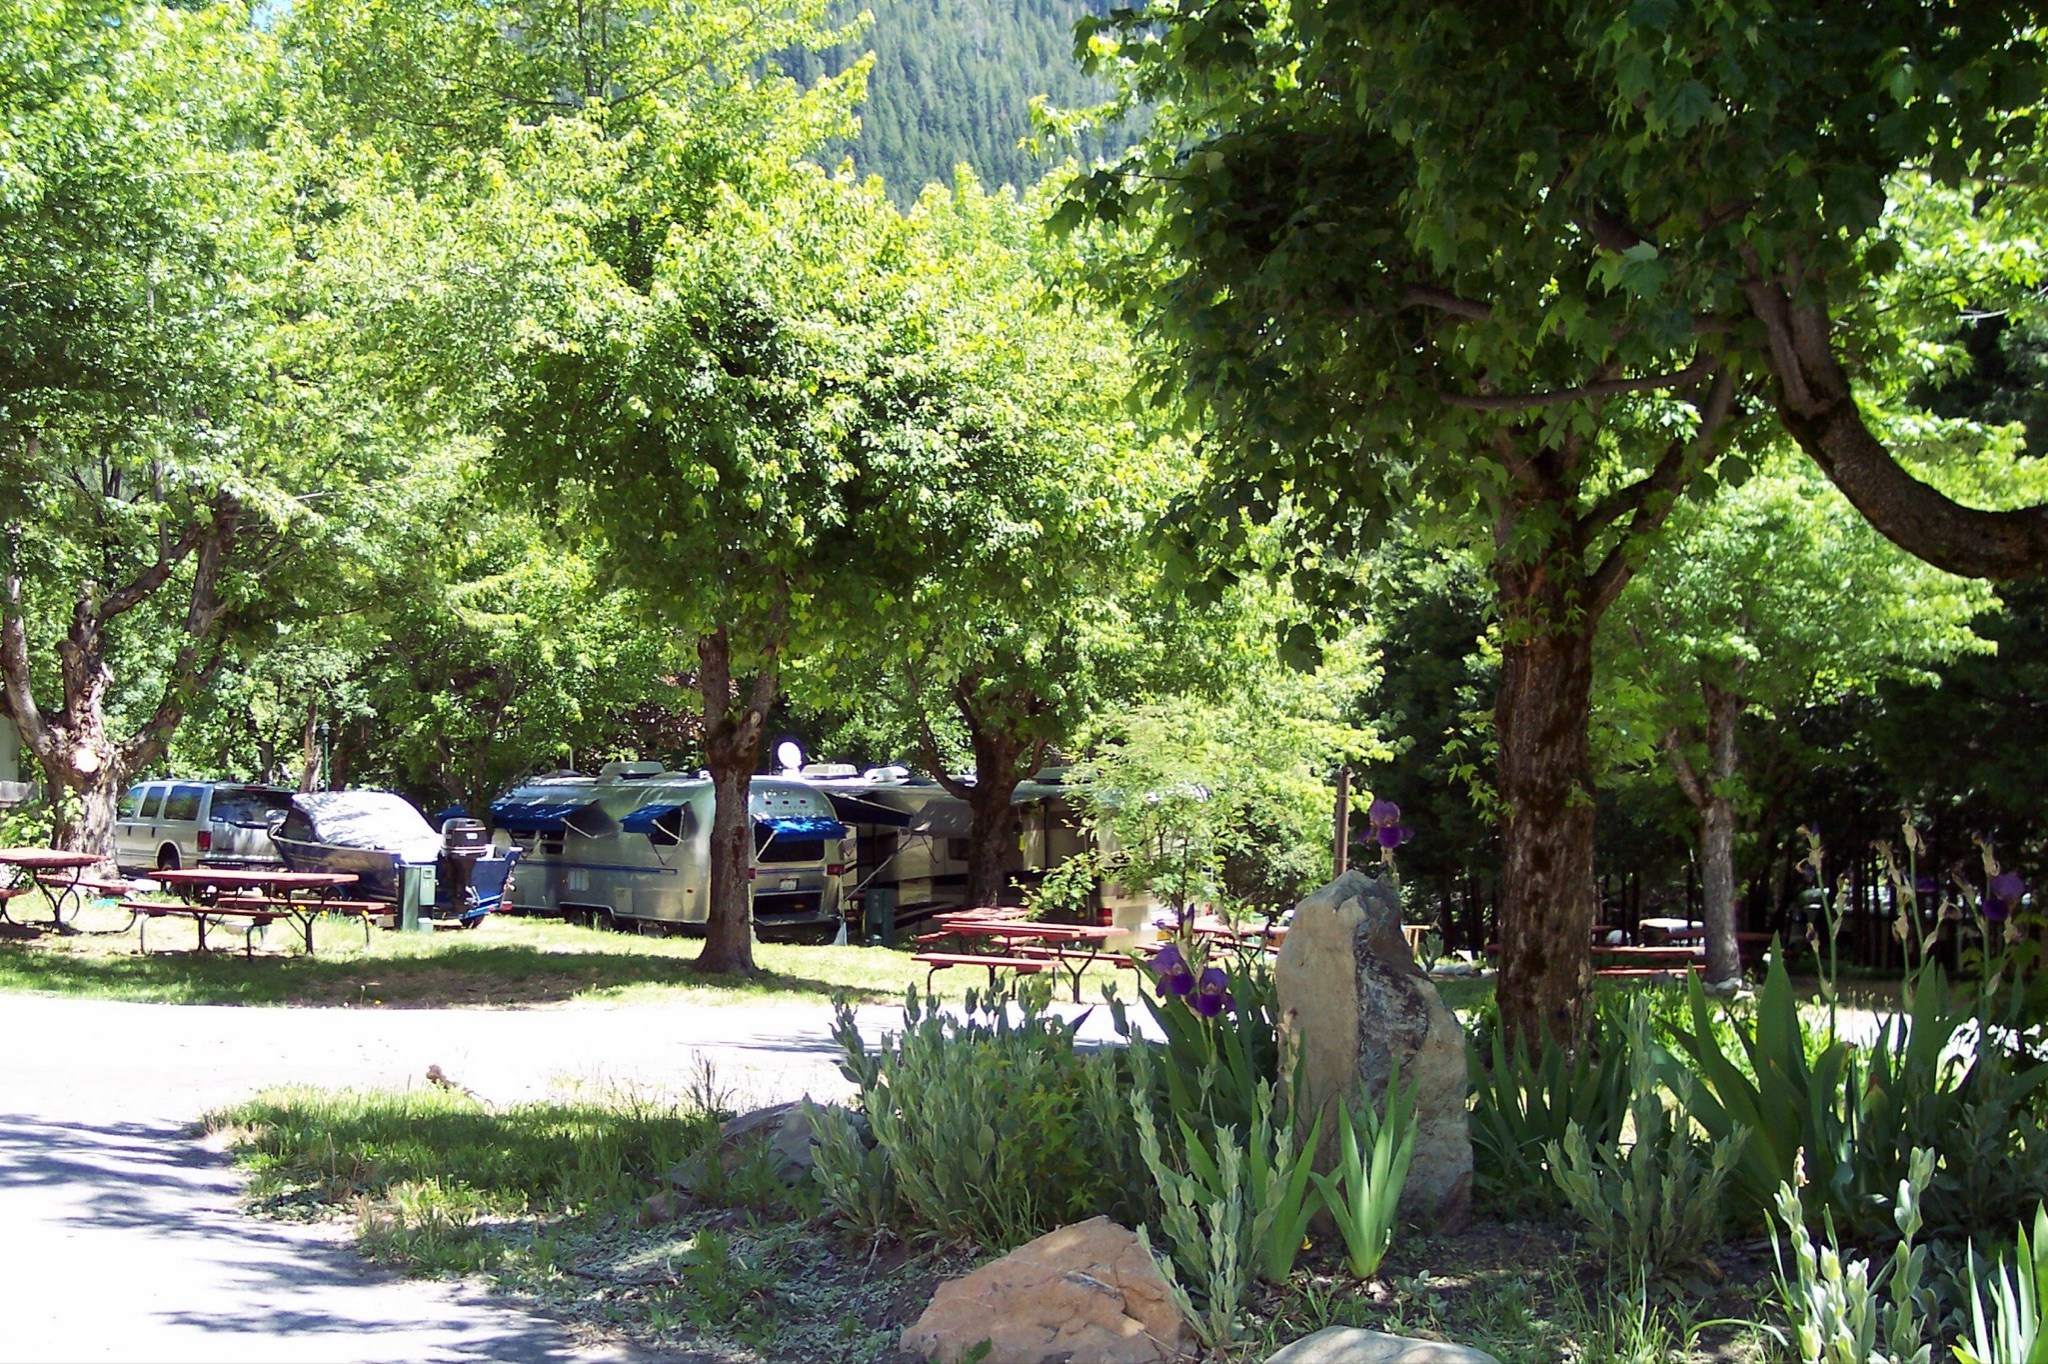 Green campground with flowers with an airstream tucked away in the woods.